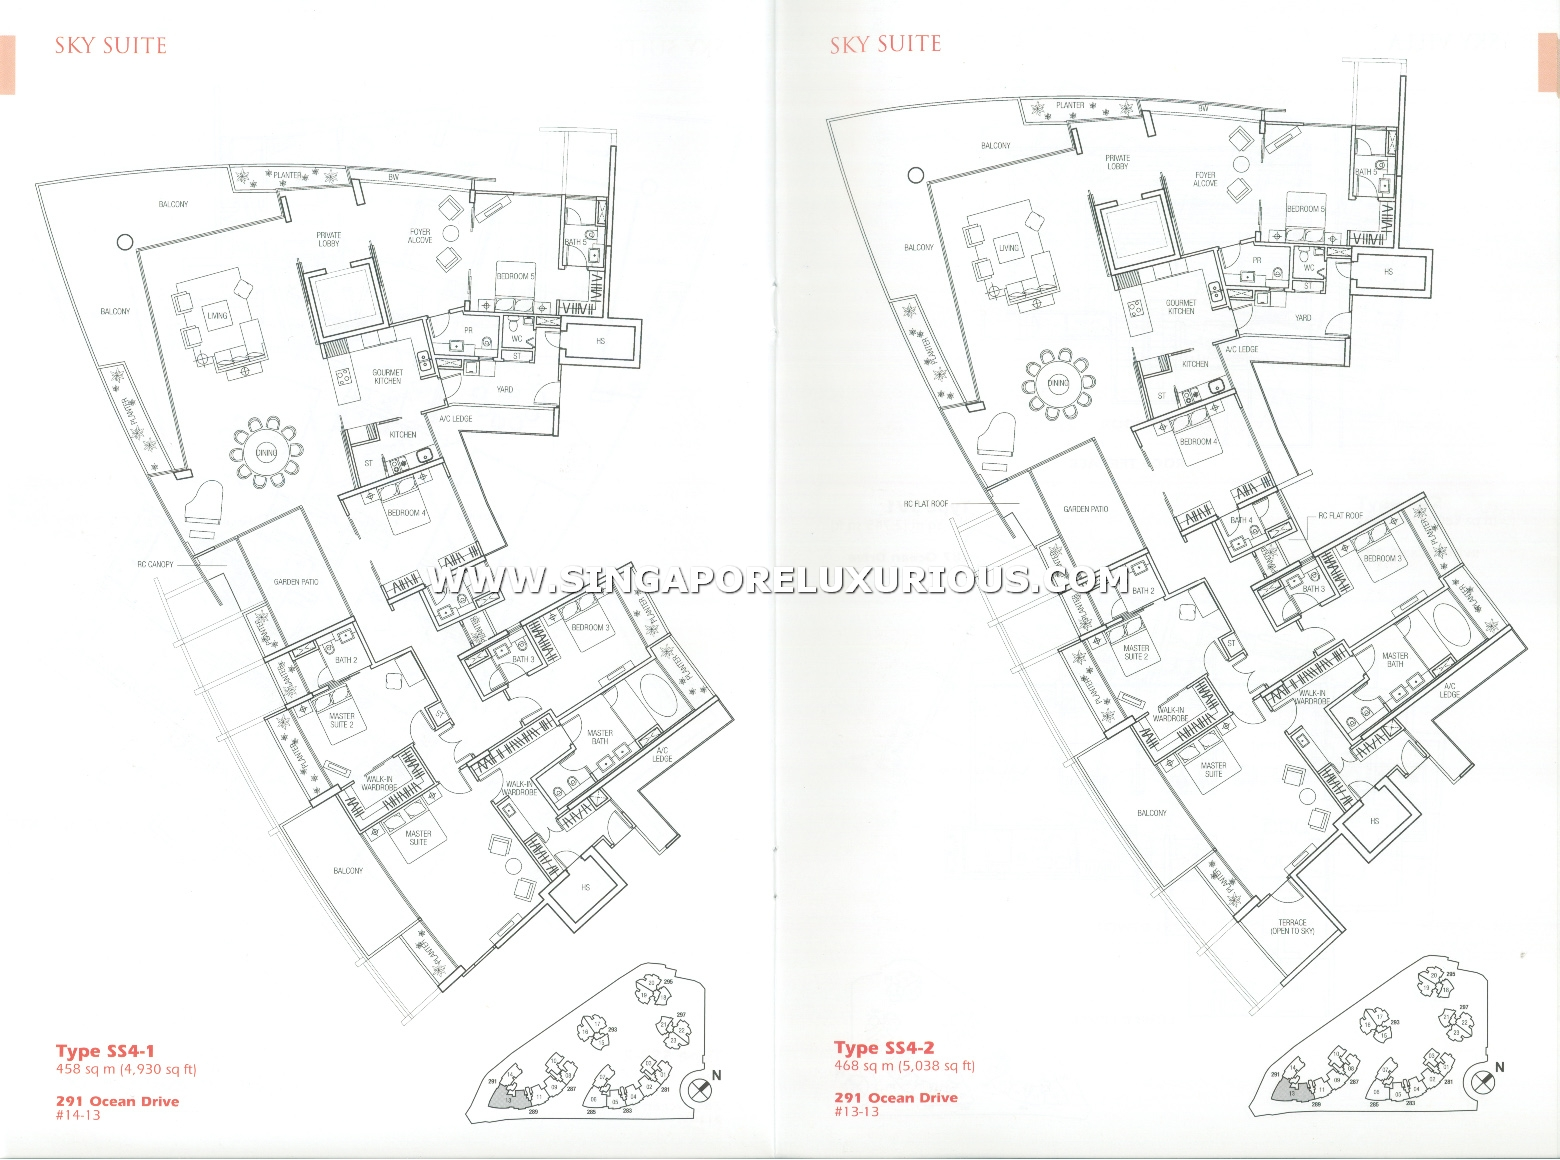 the oceanfront sentosa cove site floor plan singapore luxurious Universal Studios Singapore share this